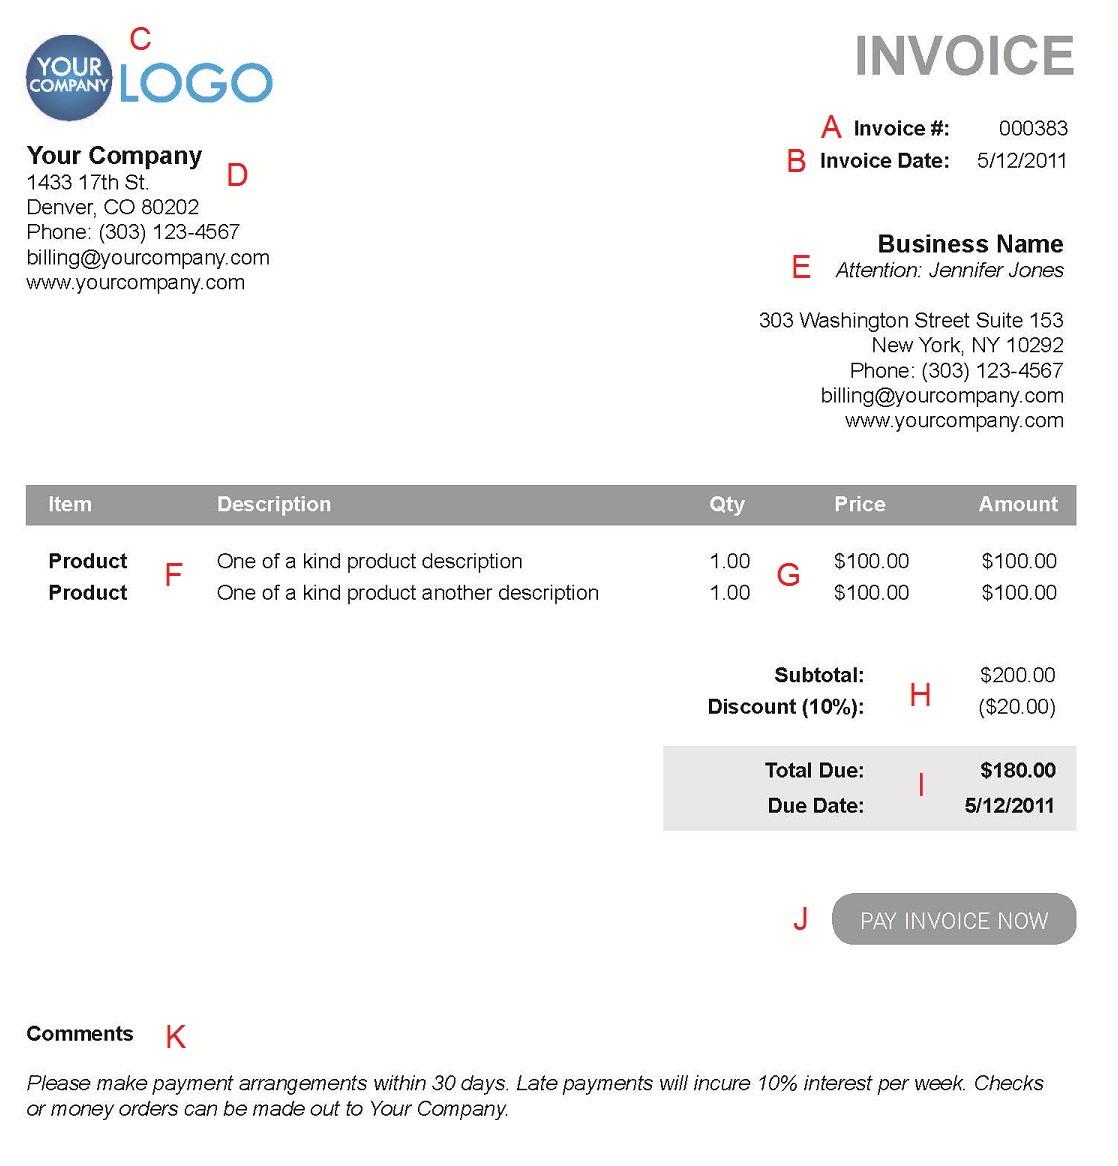 Coolmathgamesus  Fascinating The  Different Sections Of An Electronic Payment Invoice With Foxy A  With Archaic States With Gross Receipts Tax Also Fake Hotel Receipts In Addition Alien Registration Receipt Card Form I And Bluetooth Receipt Printer For Ipad As Well As Receipt Maker Online Additionally Enterprise Rental Receipts From Paysimplecom With Coolmathgamesus  Foxy The  Different Sections Of An Electronic Payment Invoice With Archaic A  And Fascinating States With Gross Receipts Tax Also Fake Hotel Receipts In Addition Alien Registration Receipt Card Form I From Paysimplecom